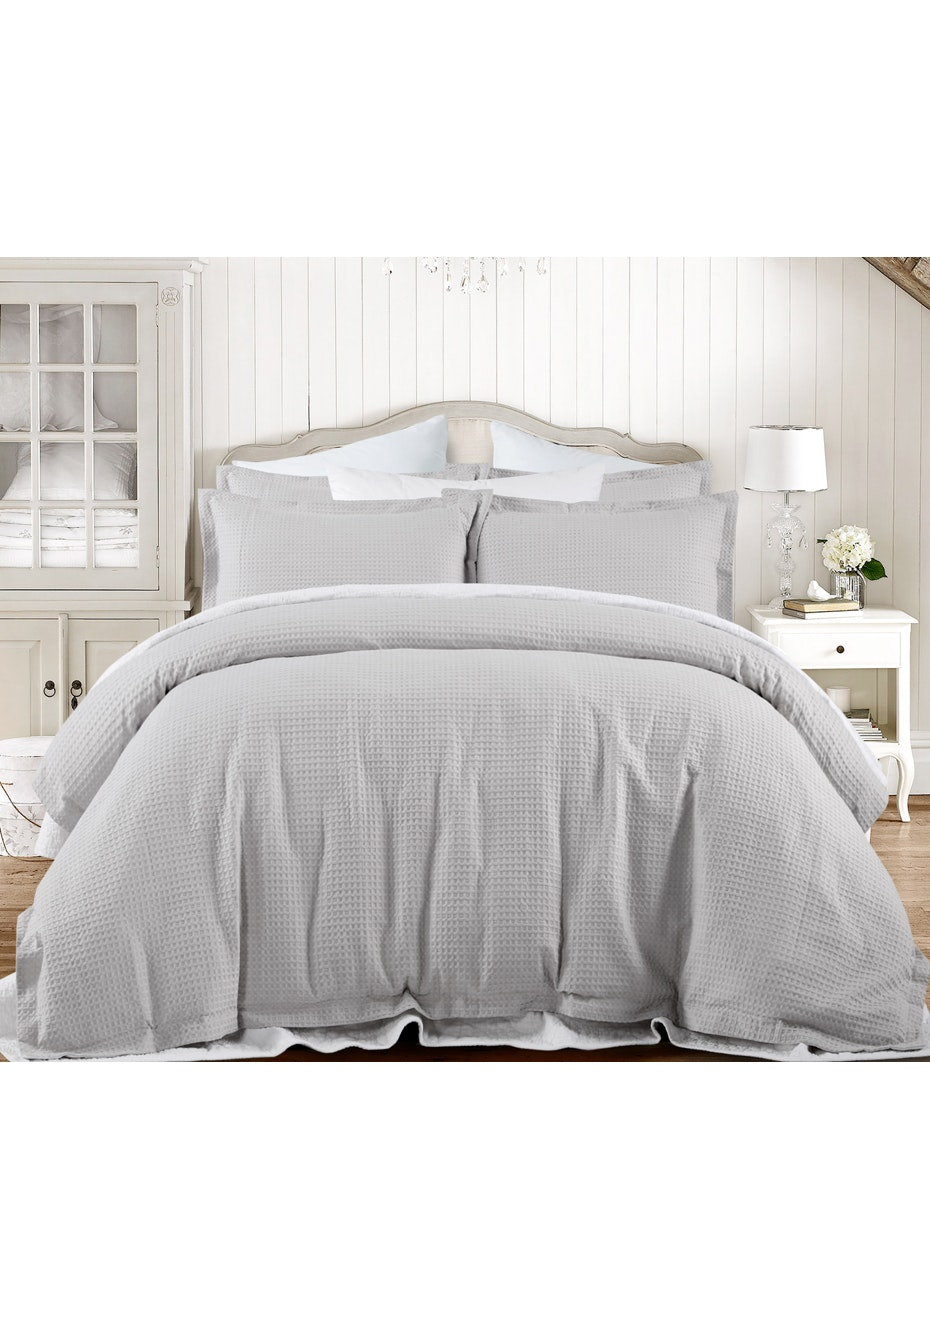 Grand Atelier Grey Hotel Waffle Quilt Cover Set- King Bed